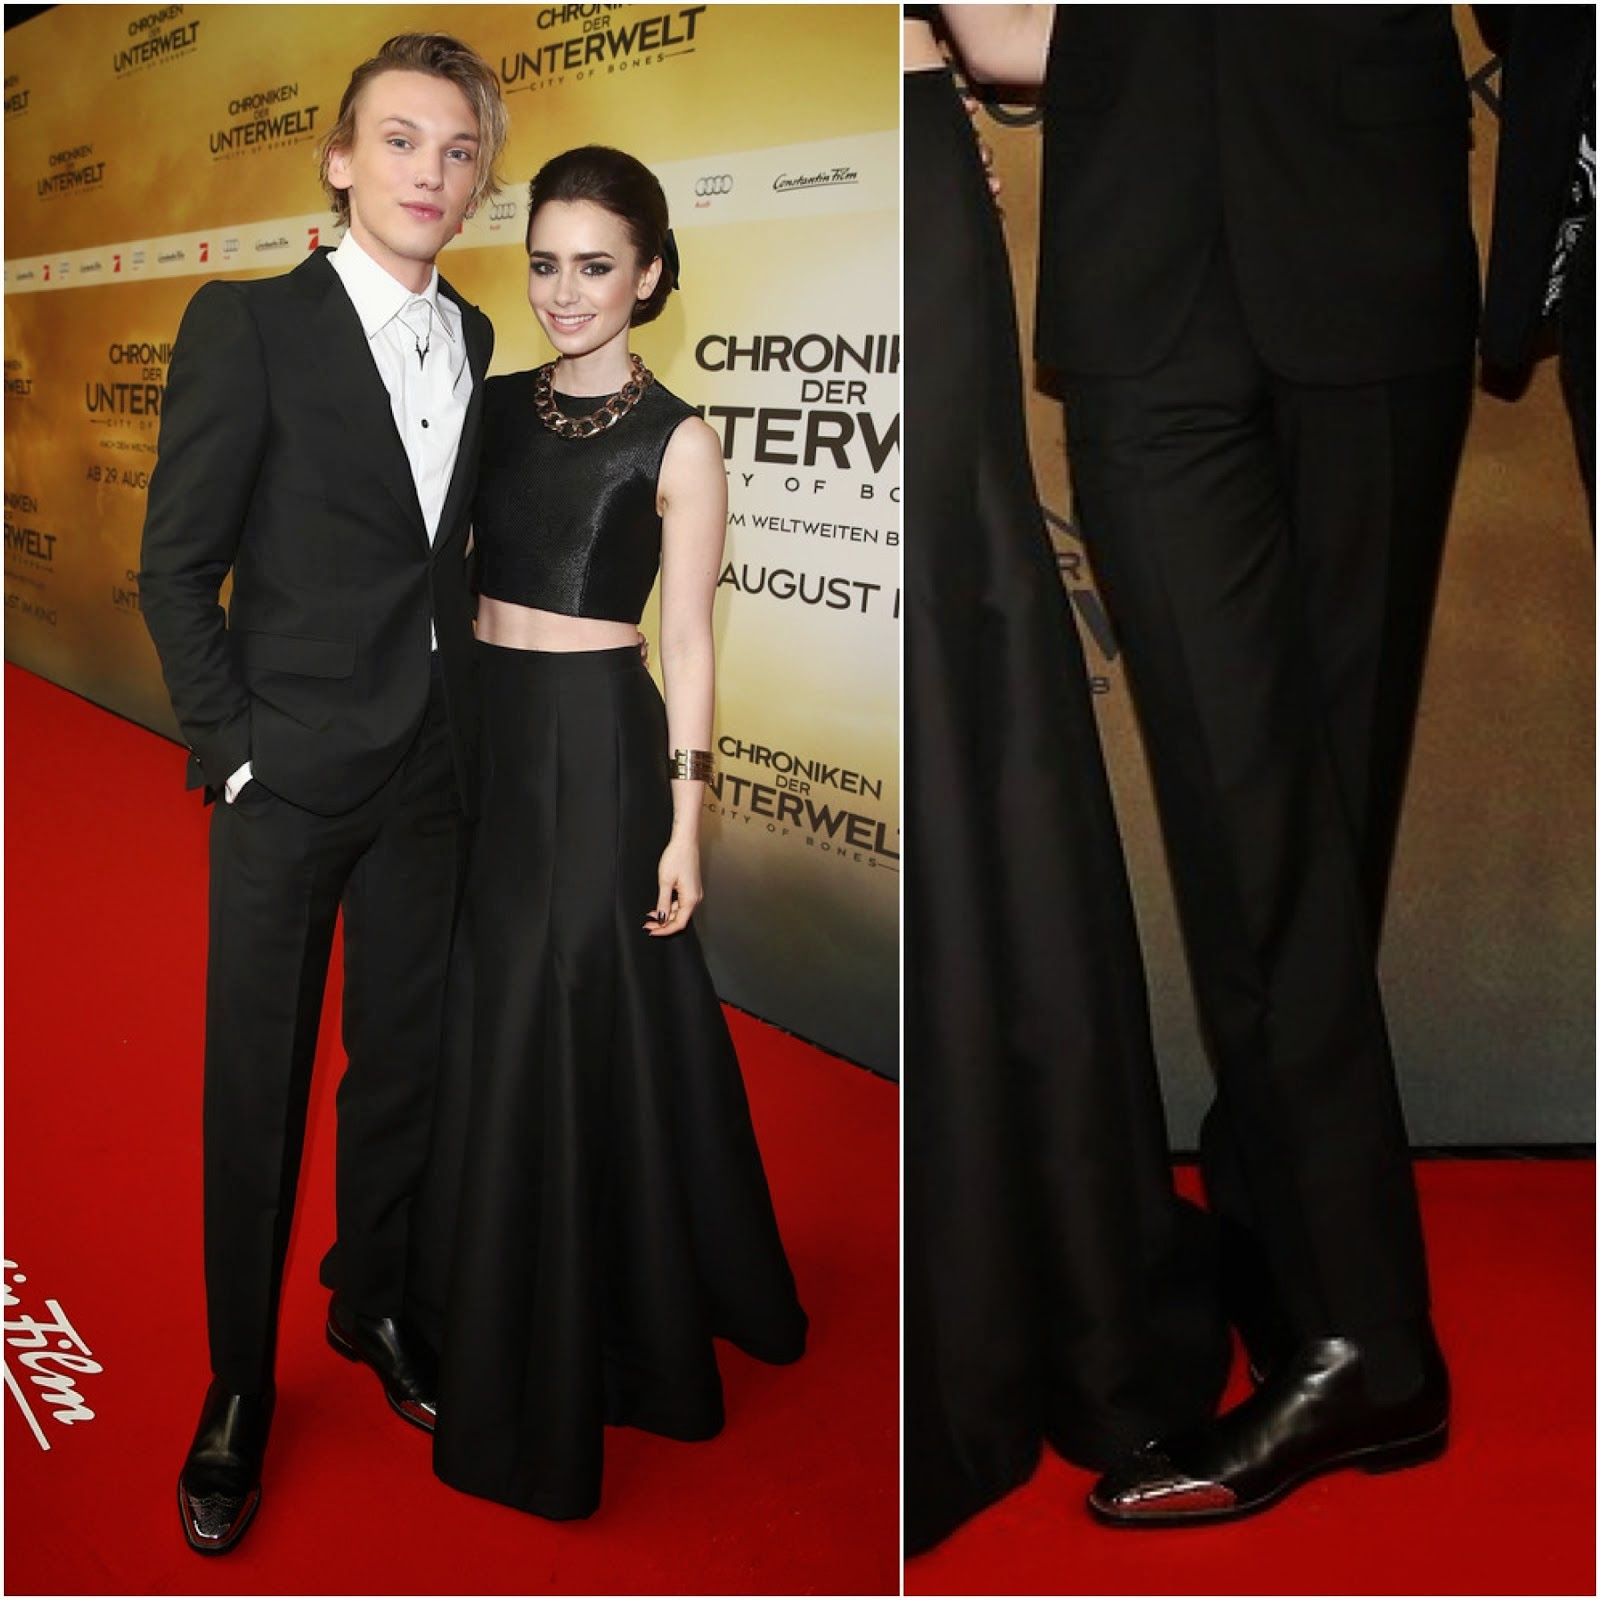 00O00 Menswear Blog: Jamie Campbell Bower in Alexander McQueen and Christian Louboutin 'Jesse' calf boots - 'The Mortal Instruments: City of Bones' Berlin Germany Premiere August 2013